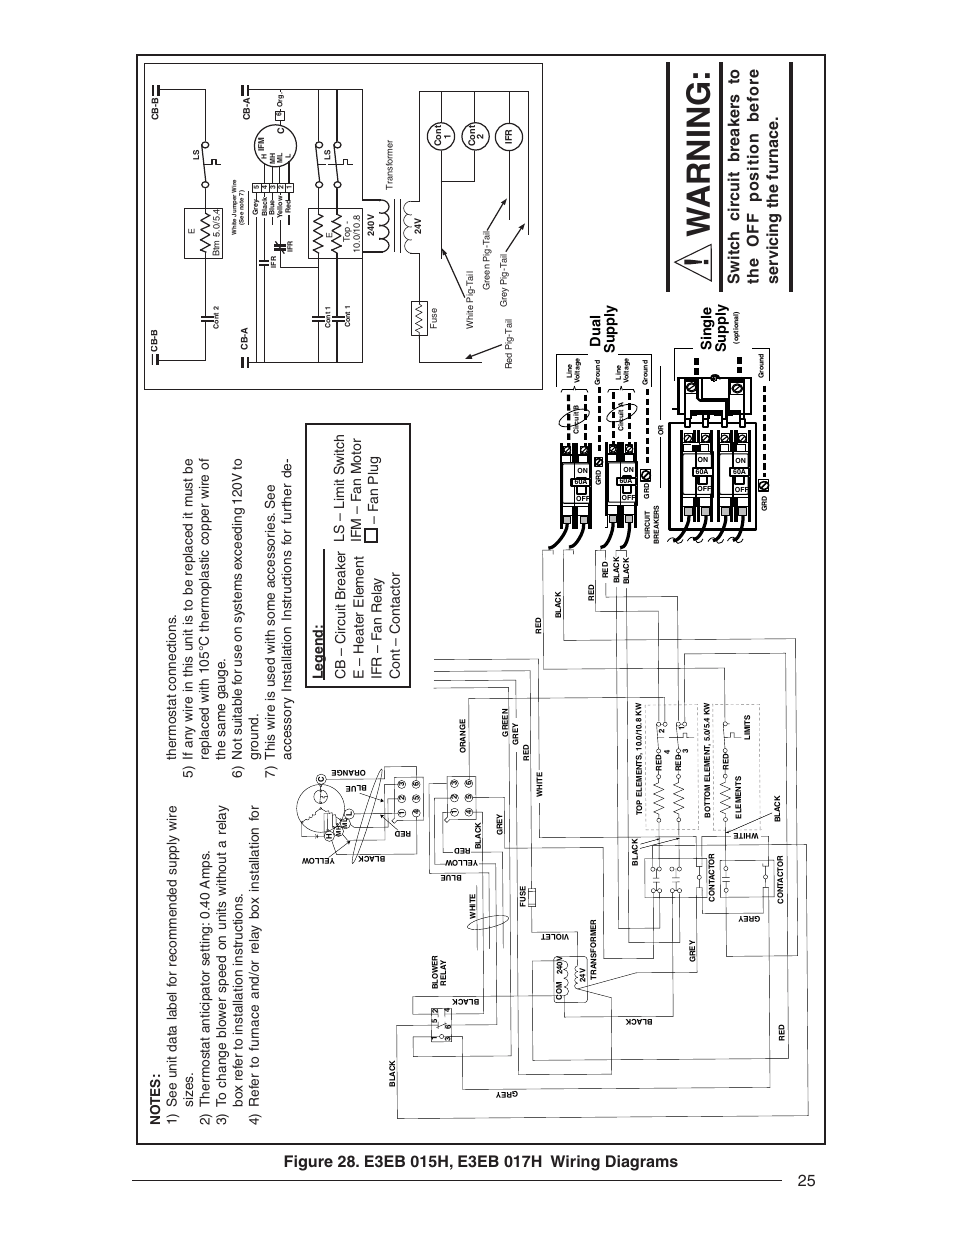 hight resolution of intertherm e3eb 015h wiring diagram data wiring diagram schema e2eb 012ha wiring diagram intertherm wiring diagram model a